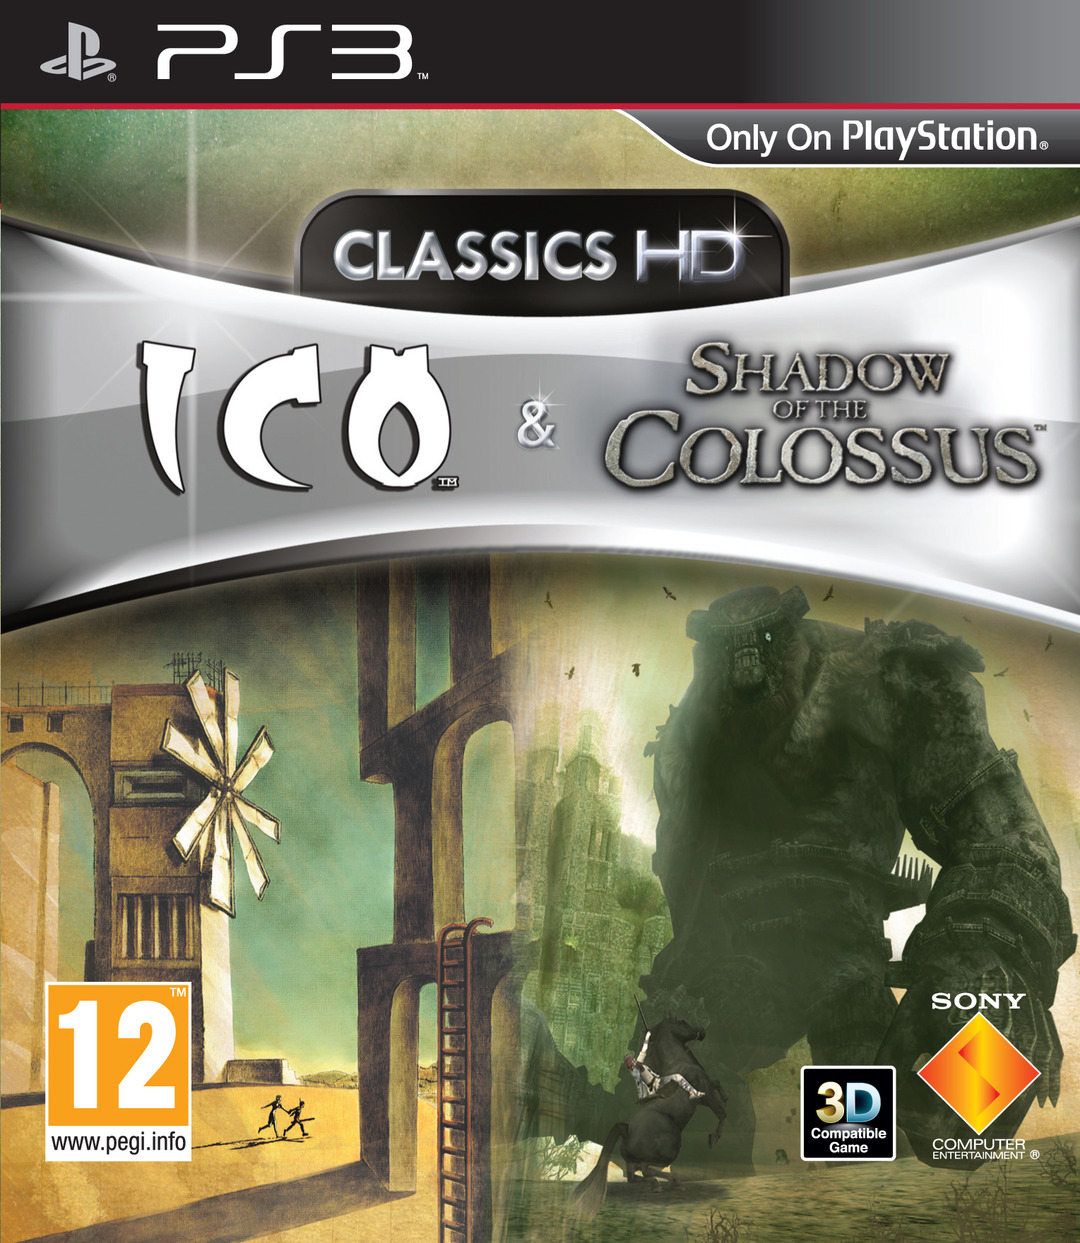 Vos jeux terminés en 2018 - Page 9 Jaquette-the-ico-and-shadow-of-the-colossus-collection-playstation-3-ps3-cover-avant-g-1307715103